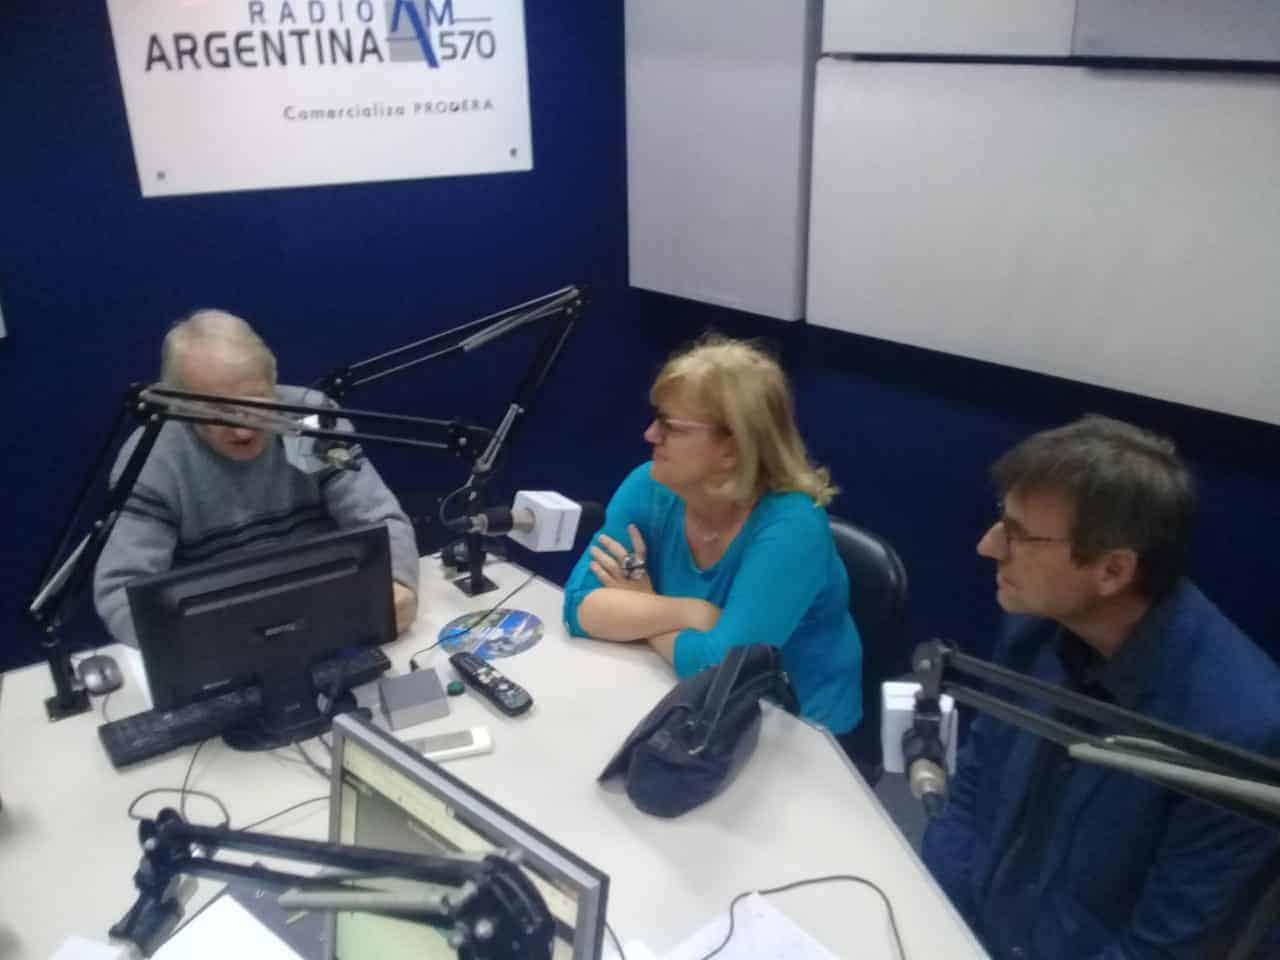 Radio-Argentina-interview-2019